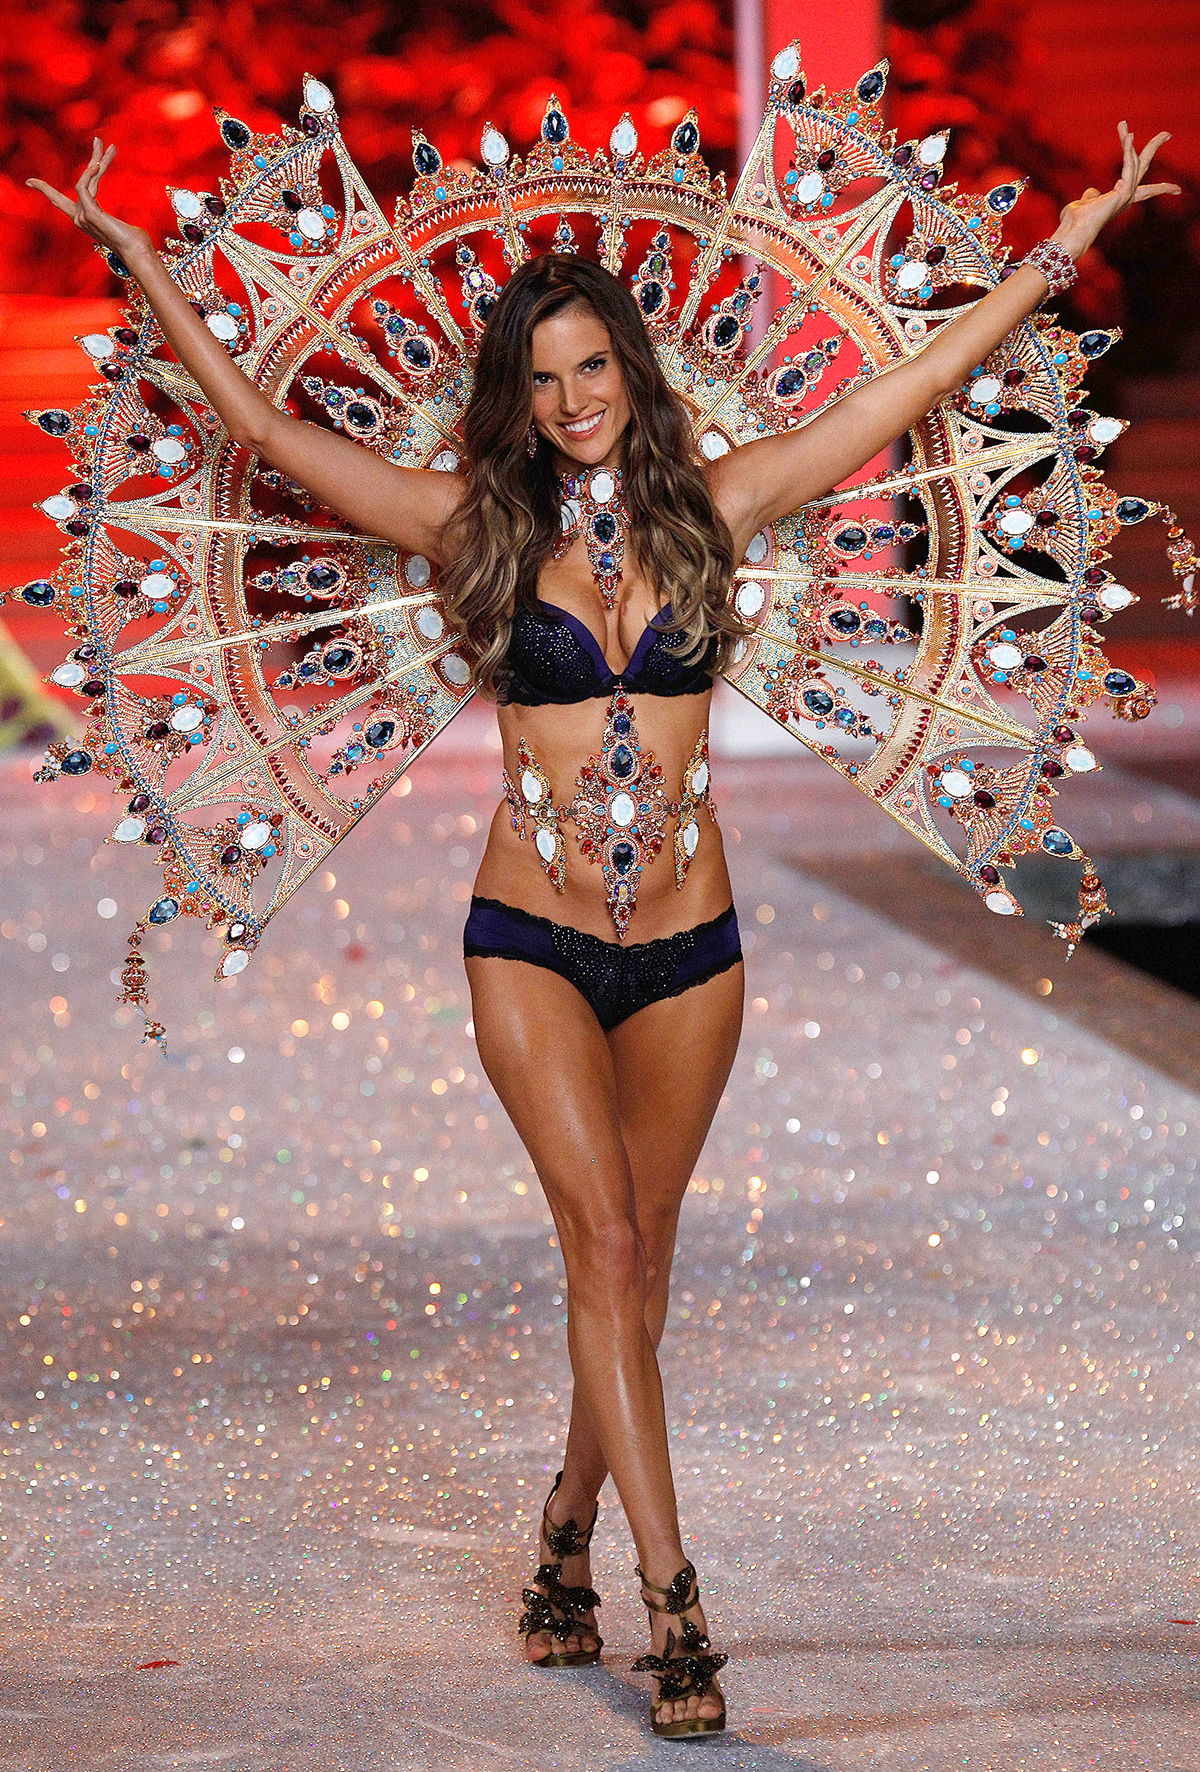 Model Alessandra Ambrosio walks the runway during the 2011 Victoria's Secret Fashion Show